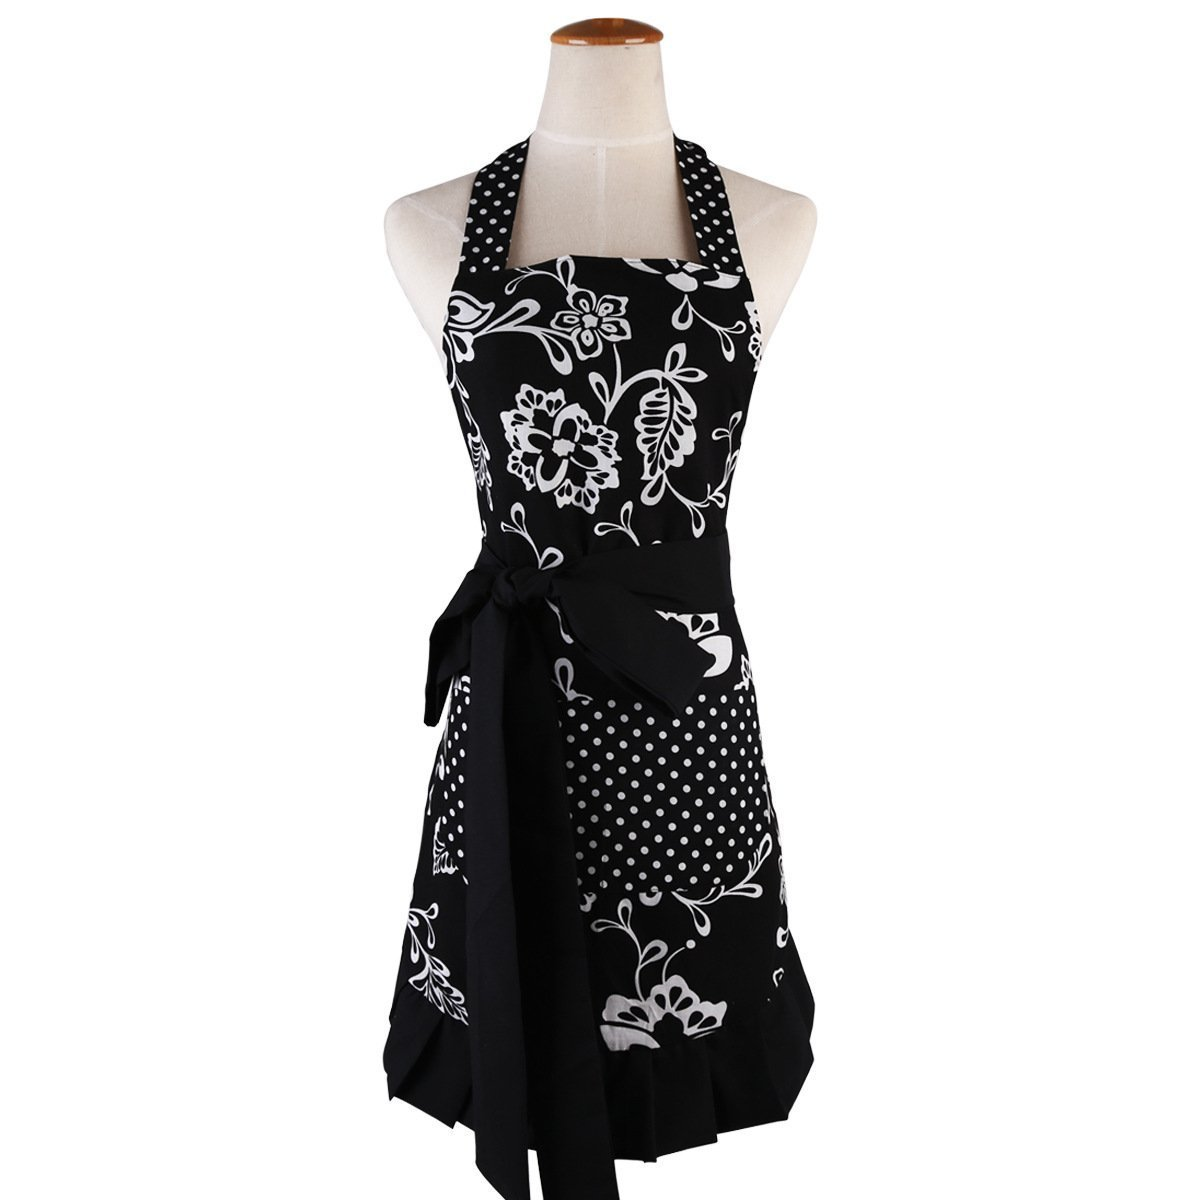 """Qureal Aprons for Women Plus Size Retro Vintage Cute Black Aprons With Two Pockets&Extra-long Tie,Kitchen Aprons for Baking Cooking Gardening 29 x 21"""" (black)"""